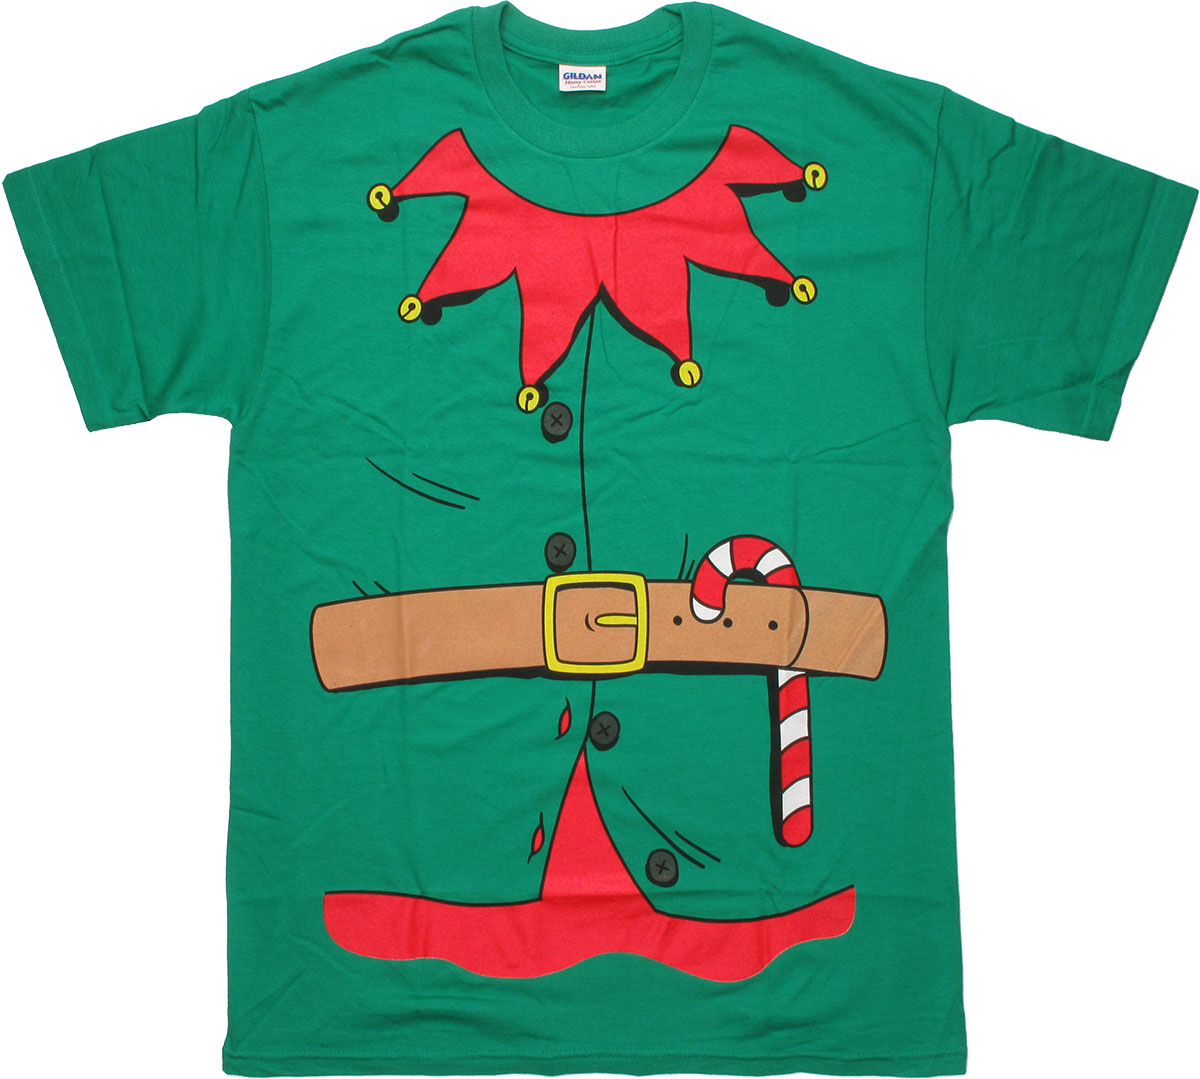 Elf Costume T Shirt - Walmart.com